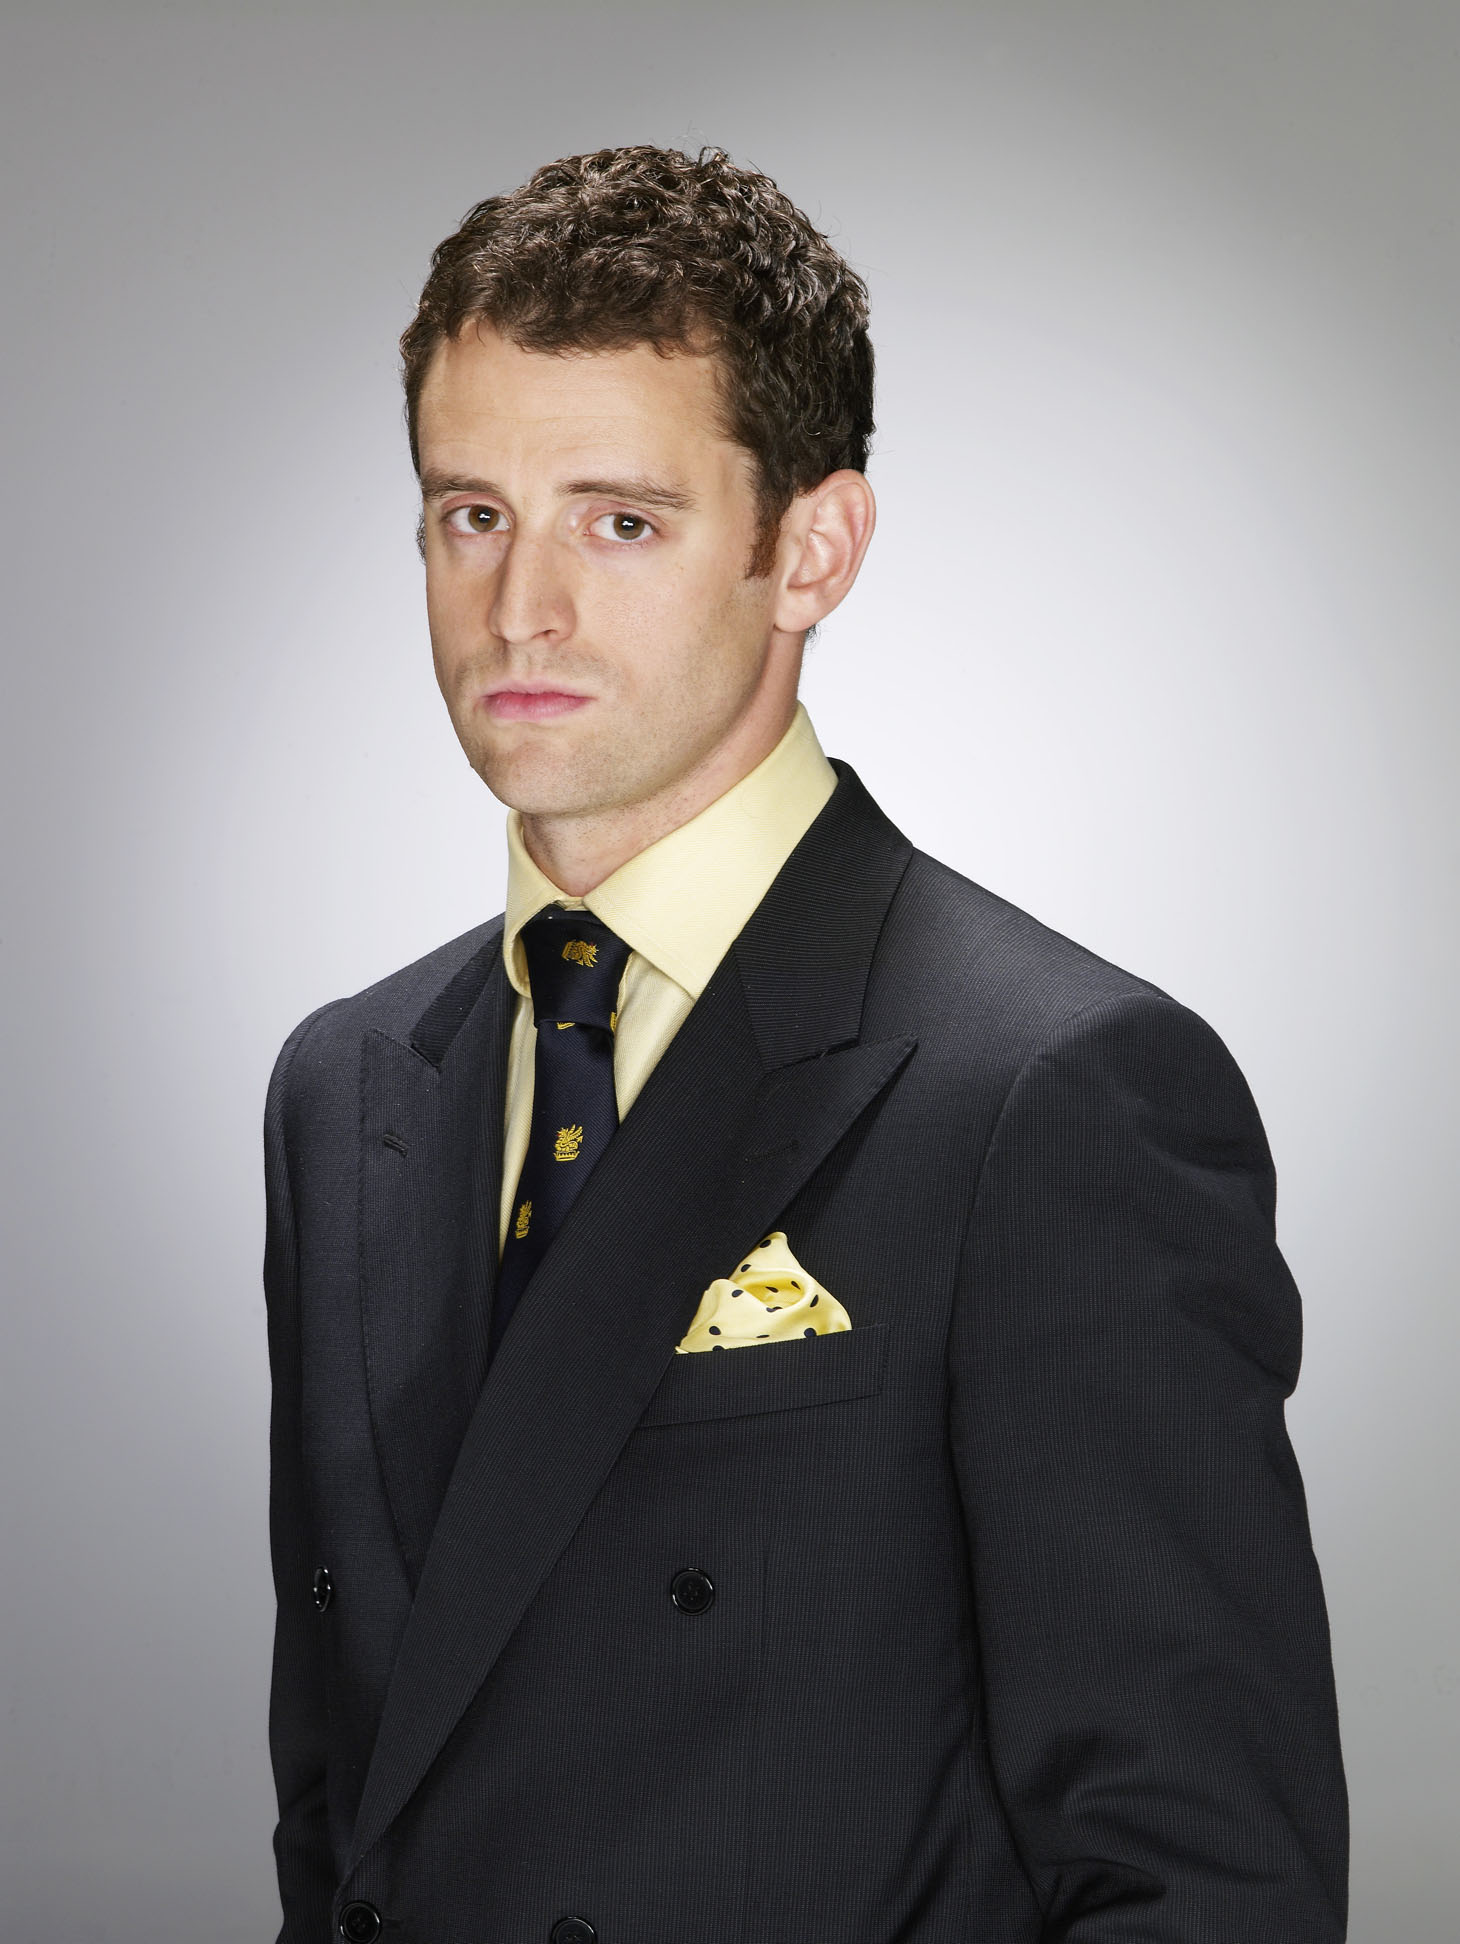 The Apprentice: Simon gets hired!